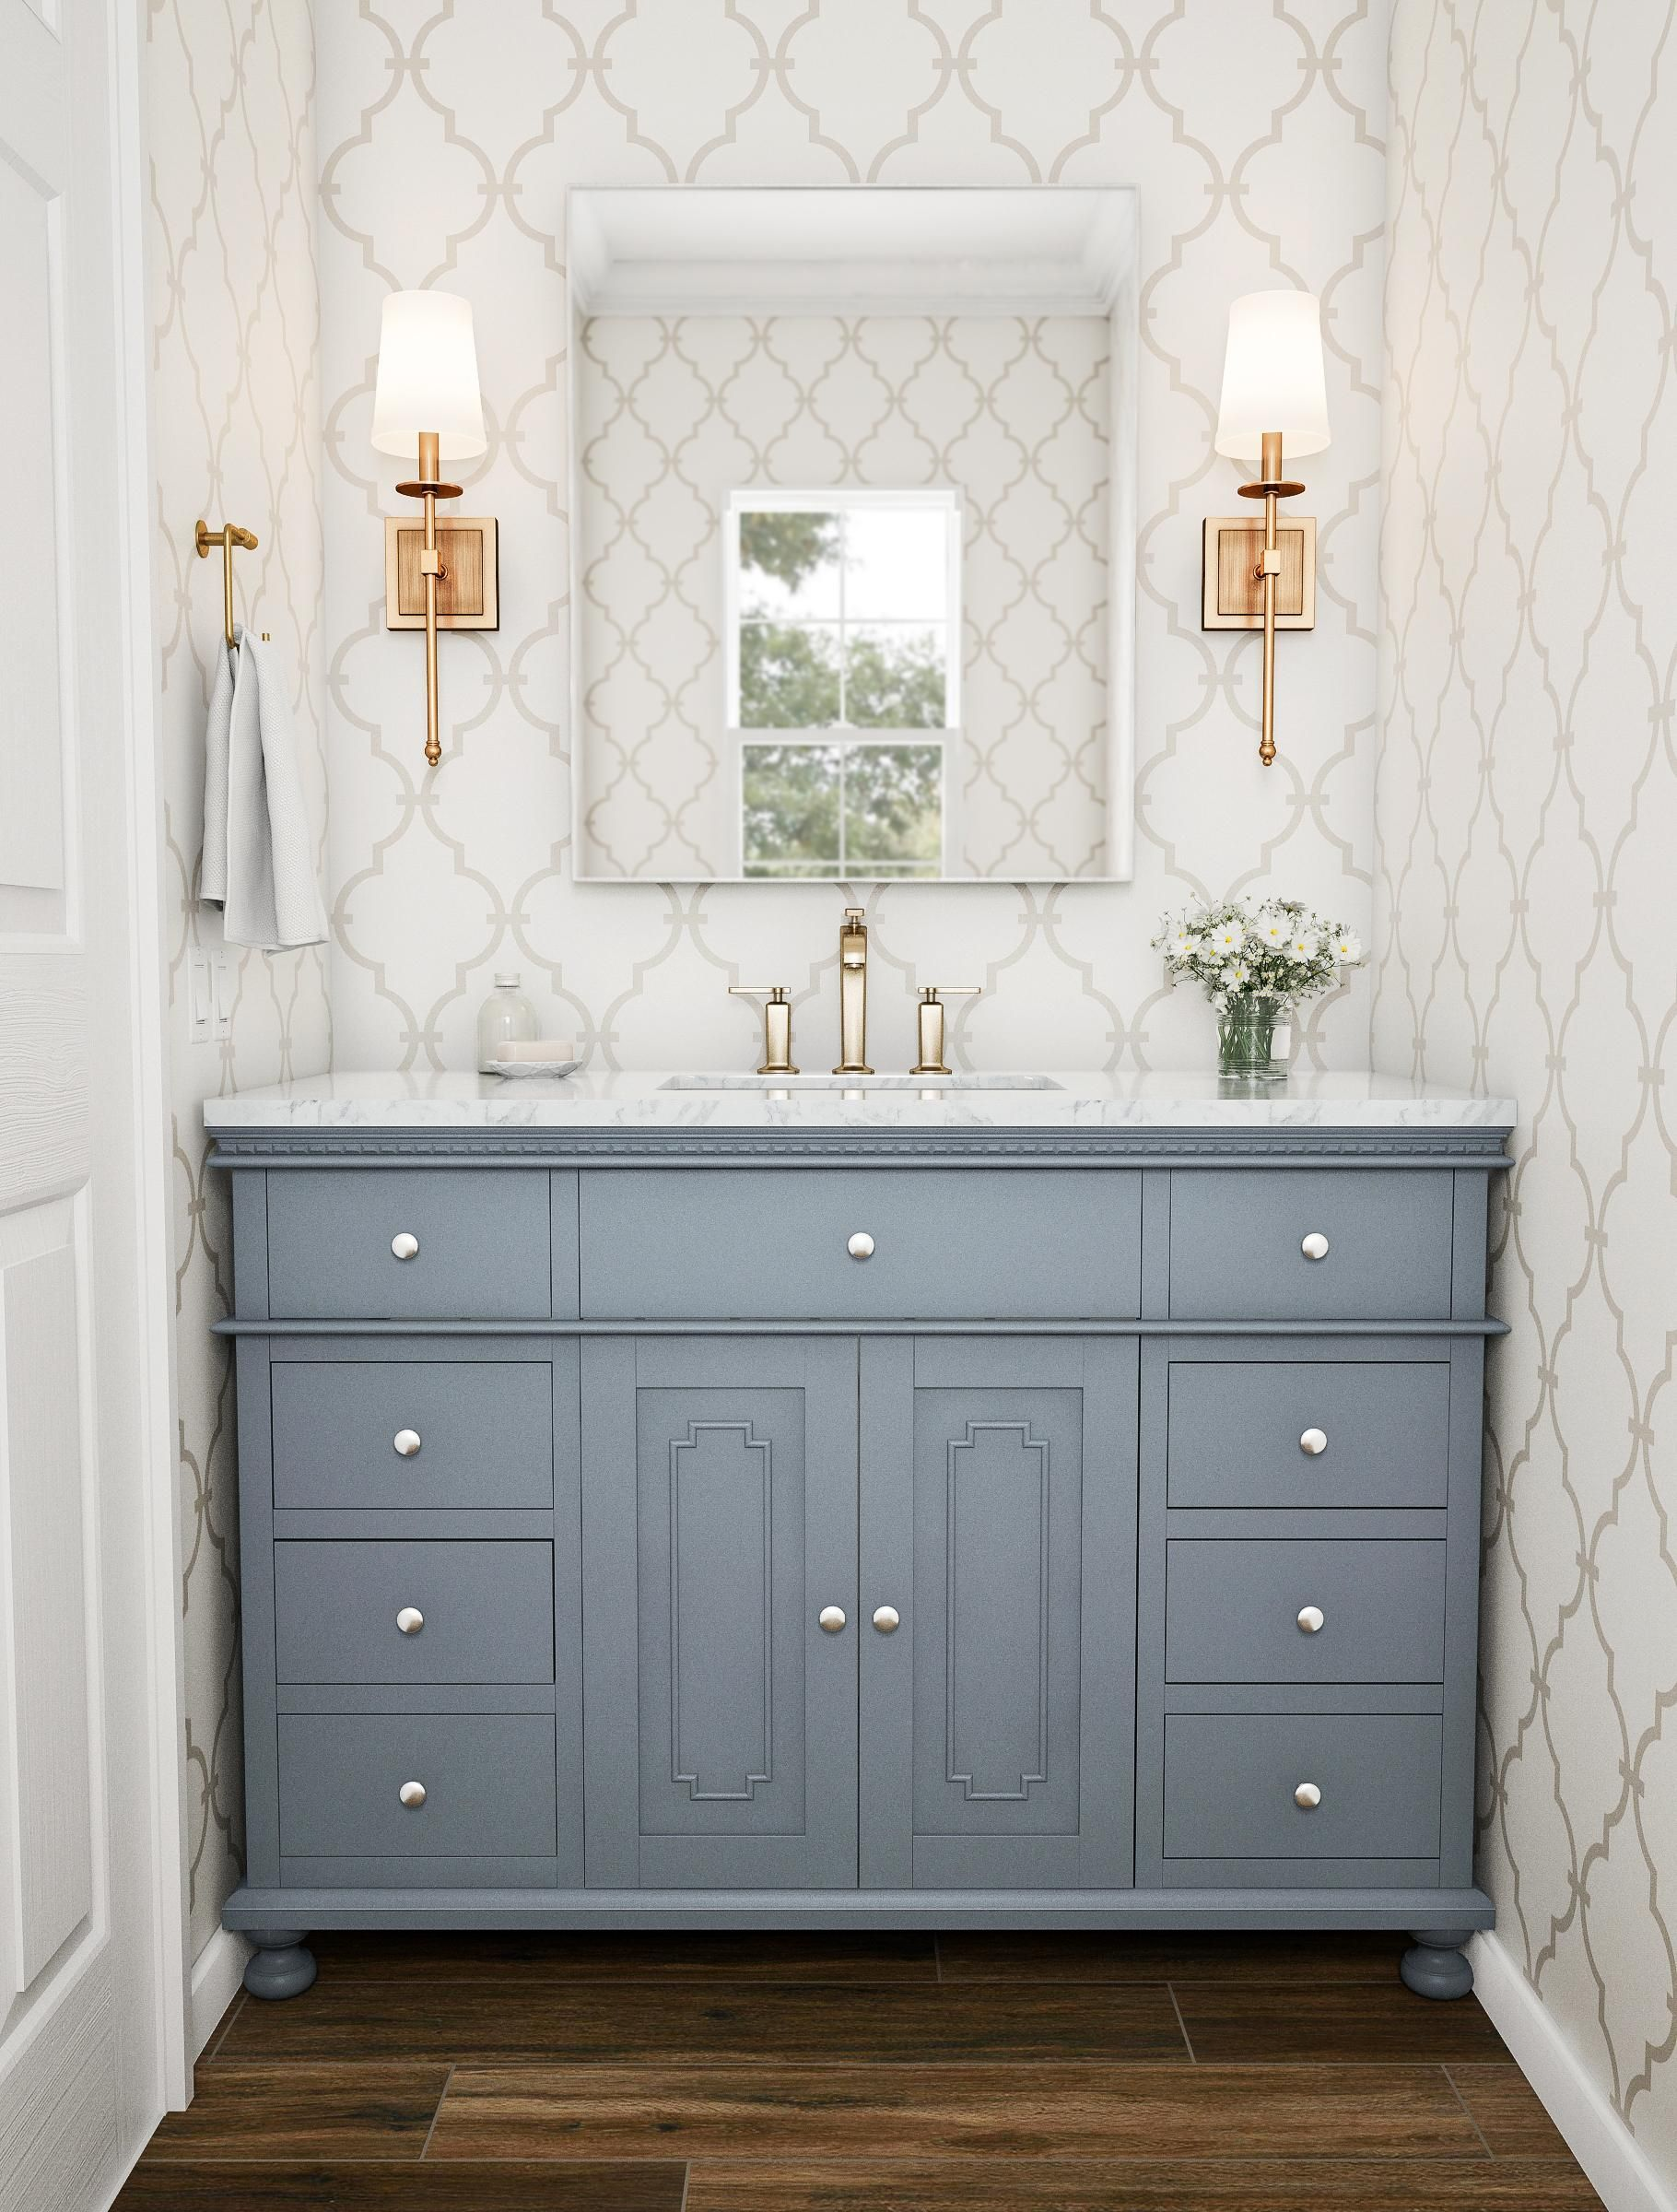 29+ Bathroom Color Ideas With the Most Likes (COMPLETE) | Bathroom ...